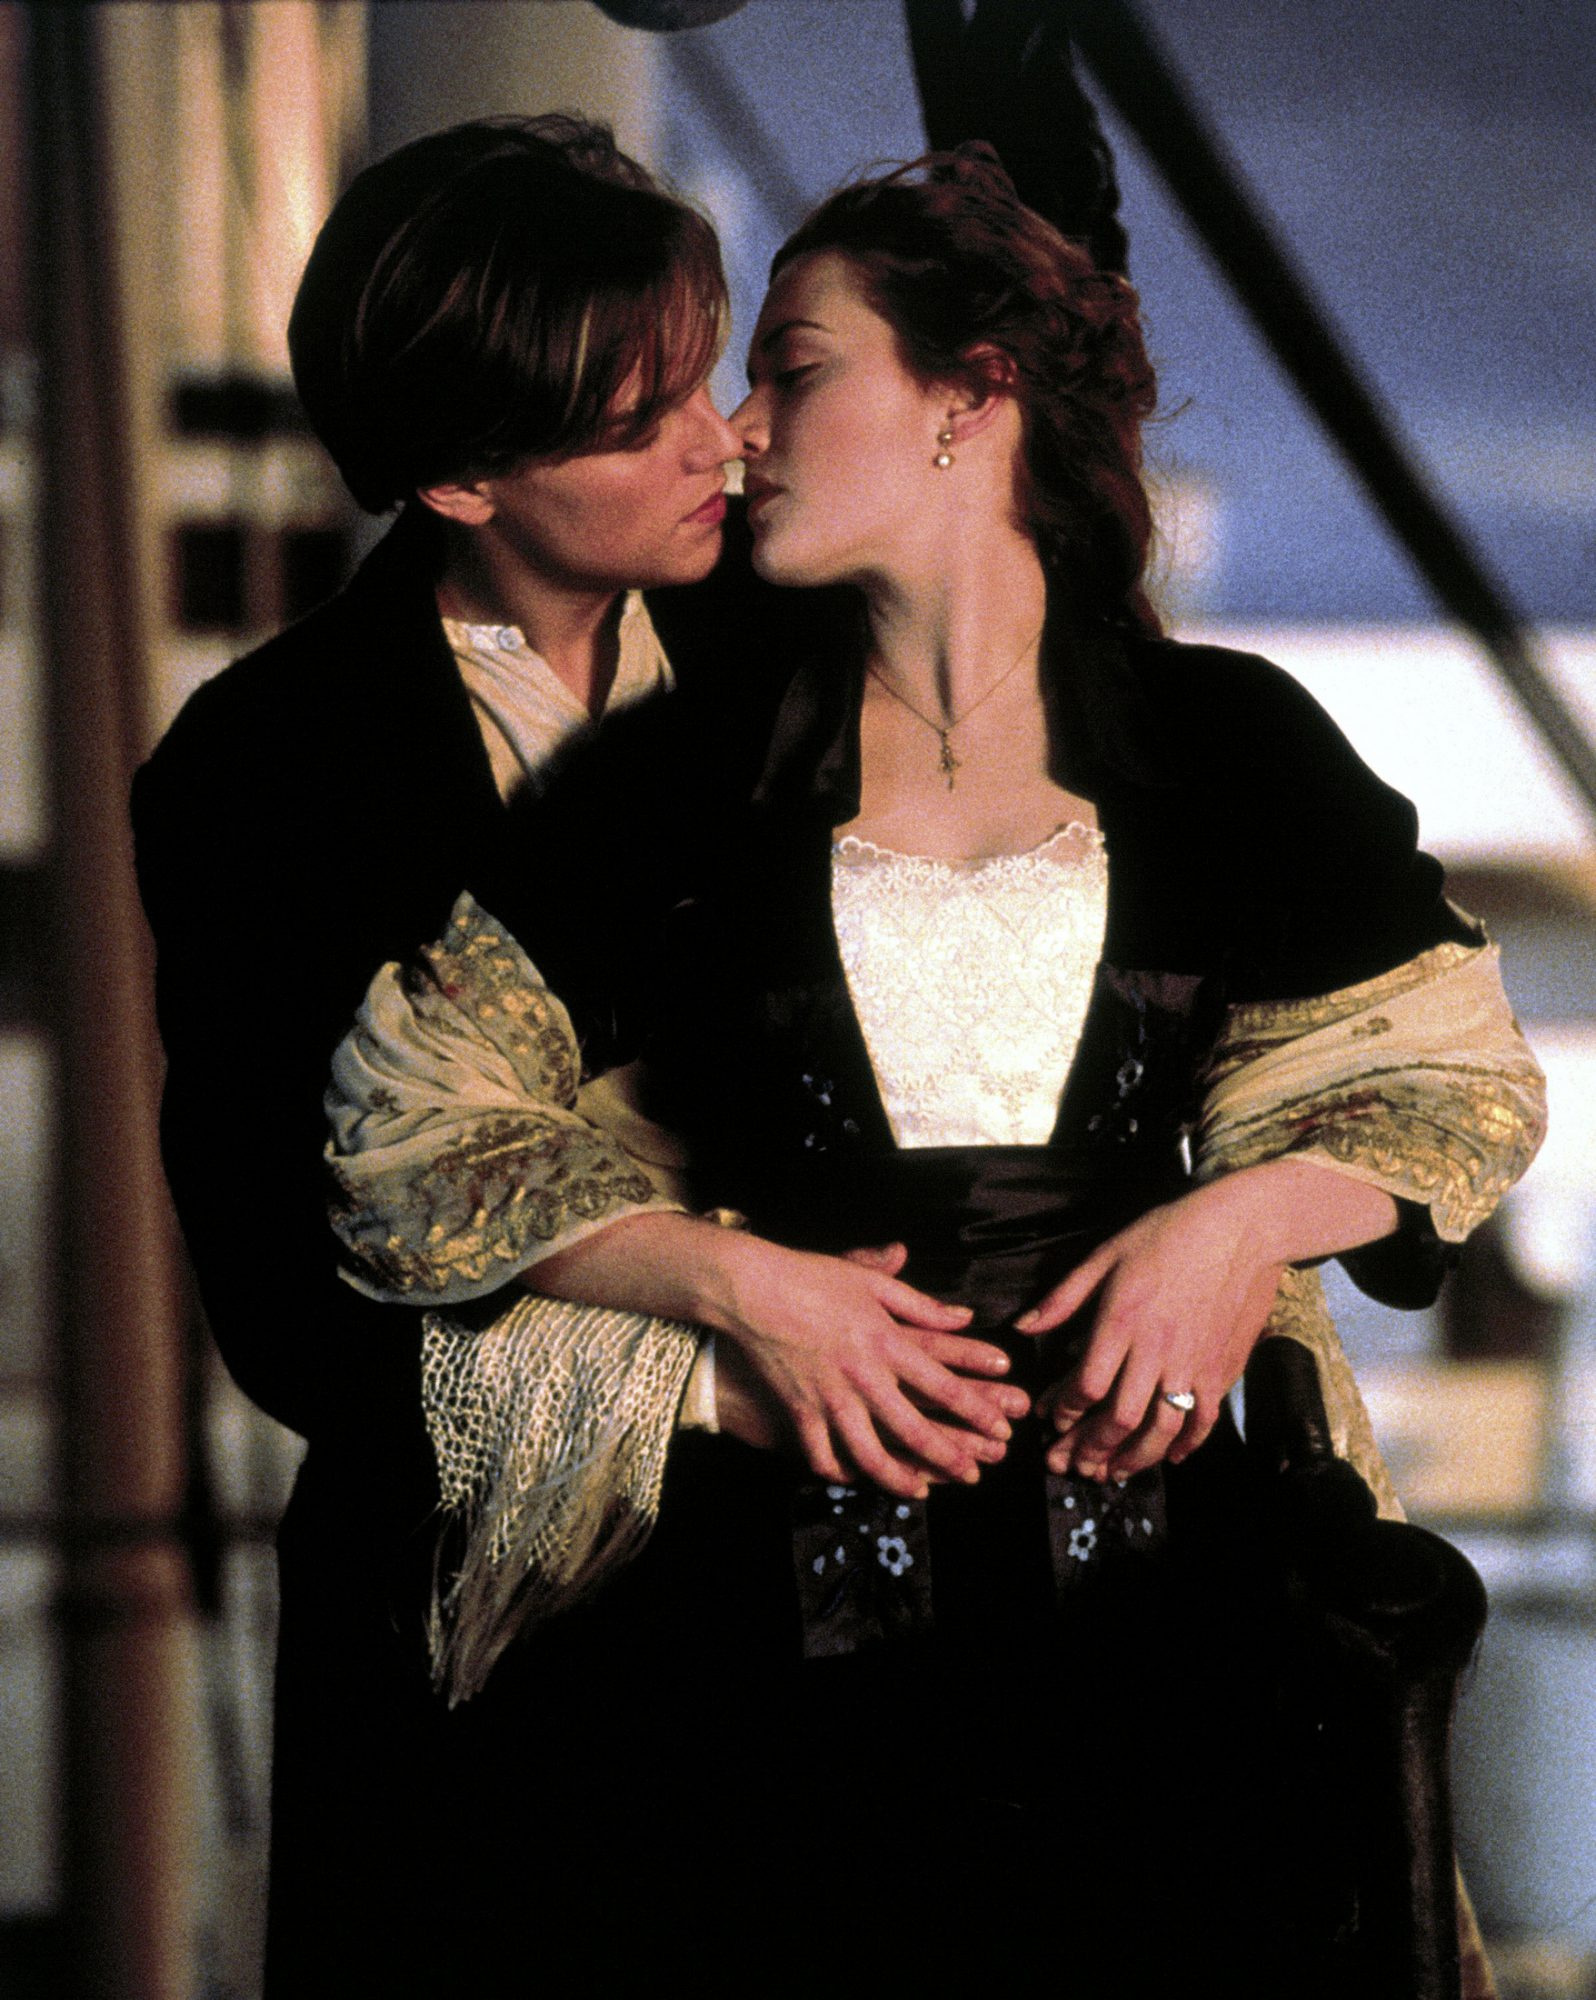 <p>He made us swoon as Jack in <em>Titanic.</em></p>